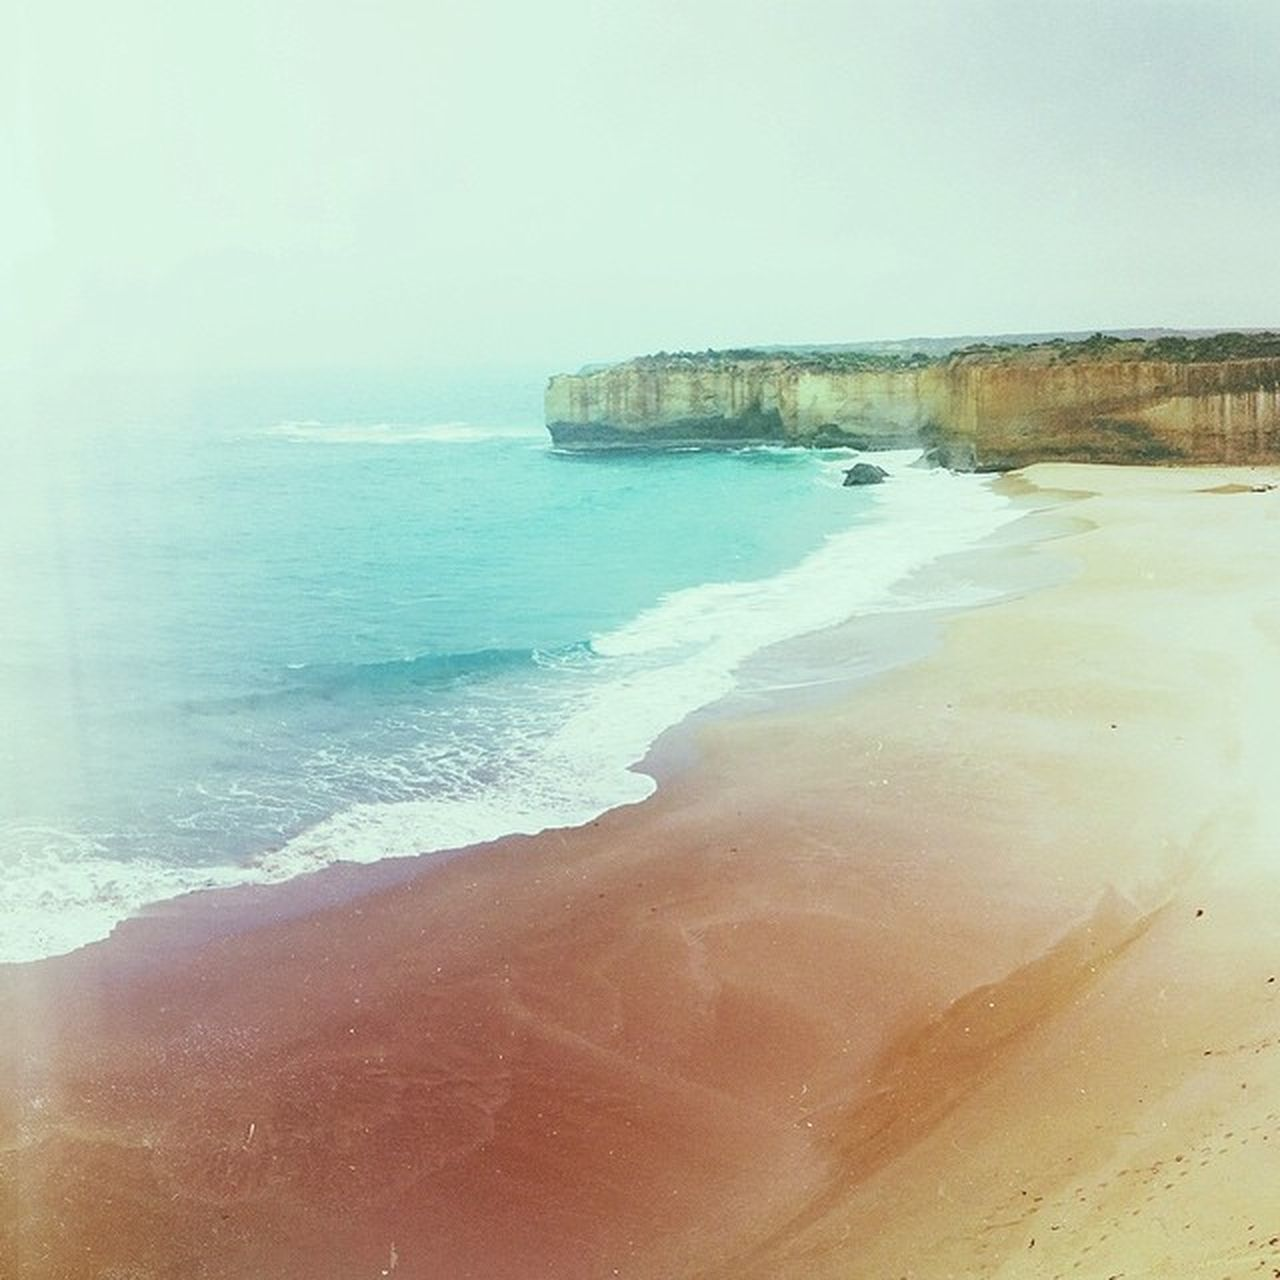 This was a few months ago, but with #mextures I could create the atmosphere I liked for this pic. #australia #greatoceanroad #portcampbell